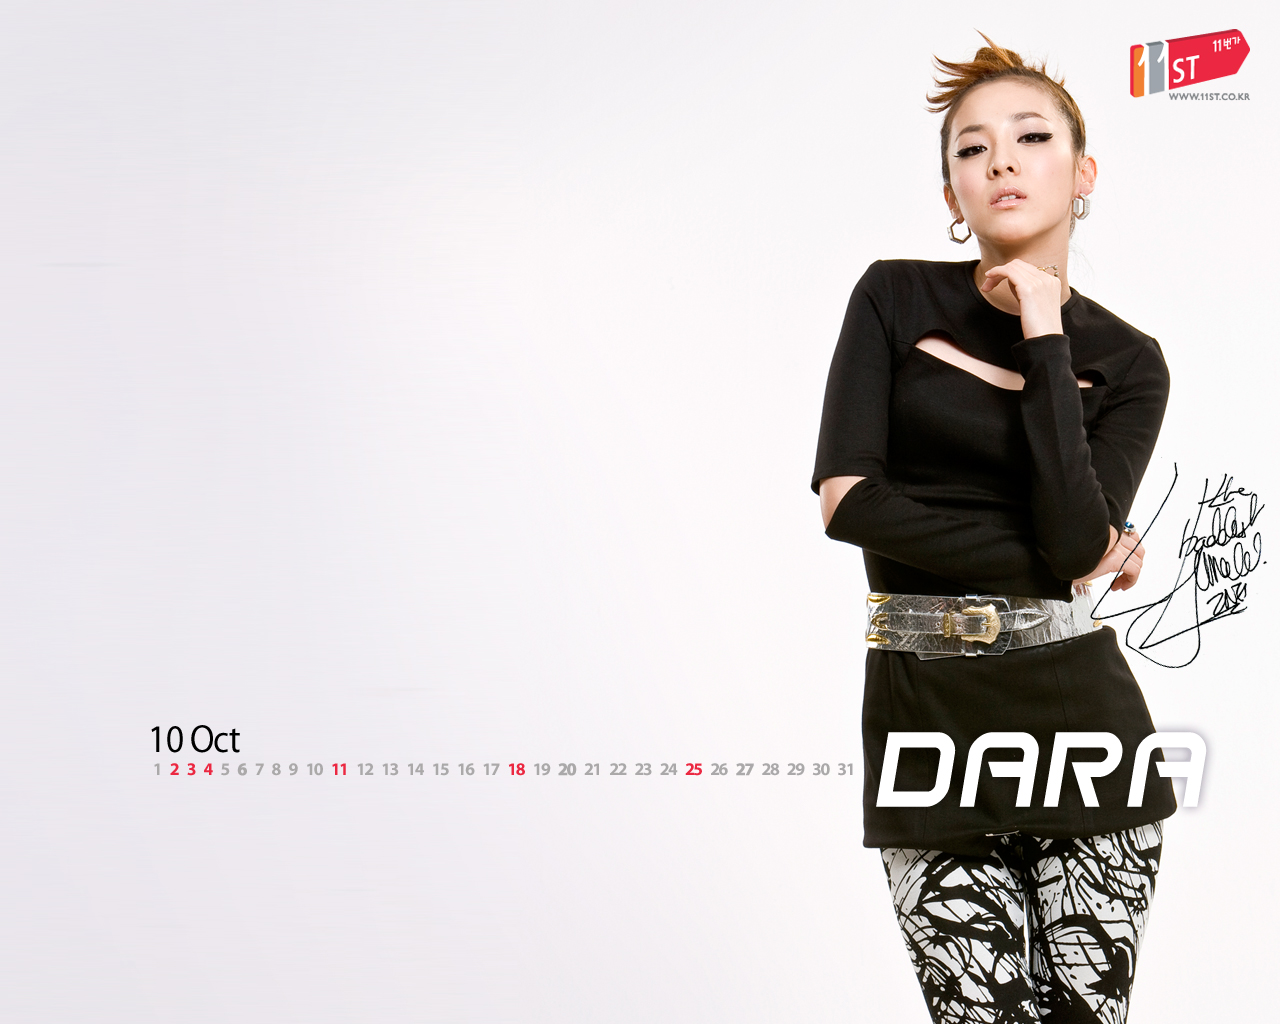 DARA 2NE1 images 2ne1 11st wallpapers HD wallpaper and background 1280x1024